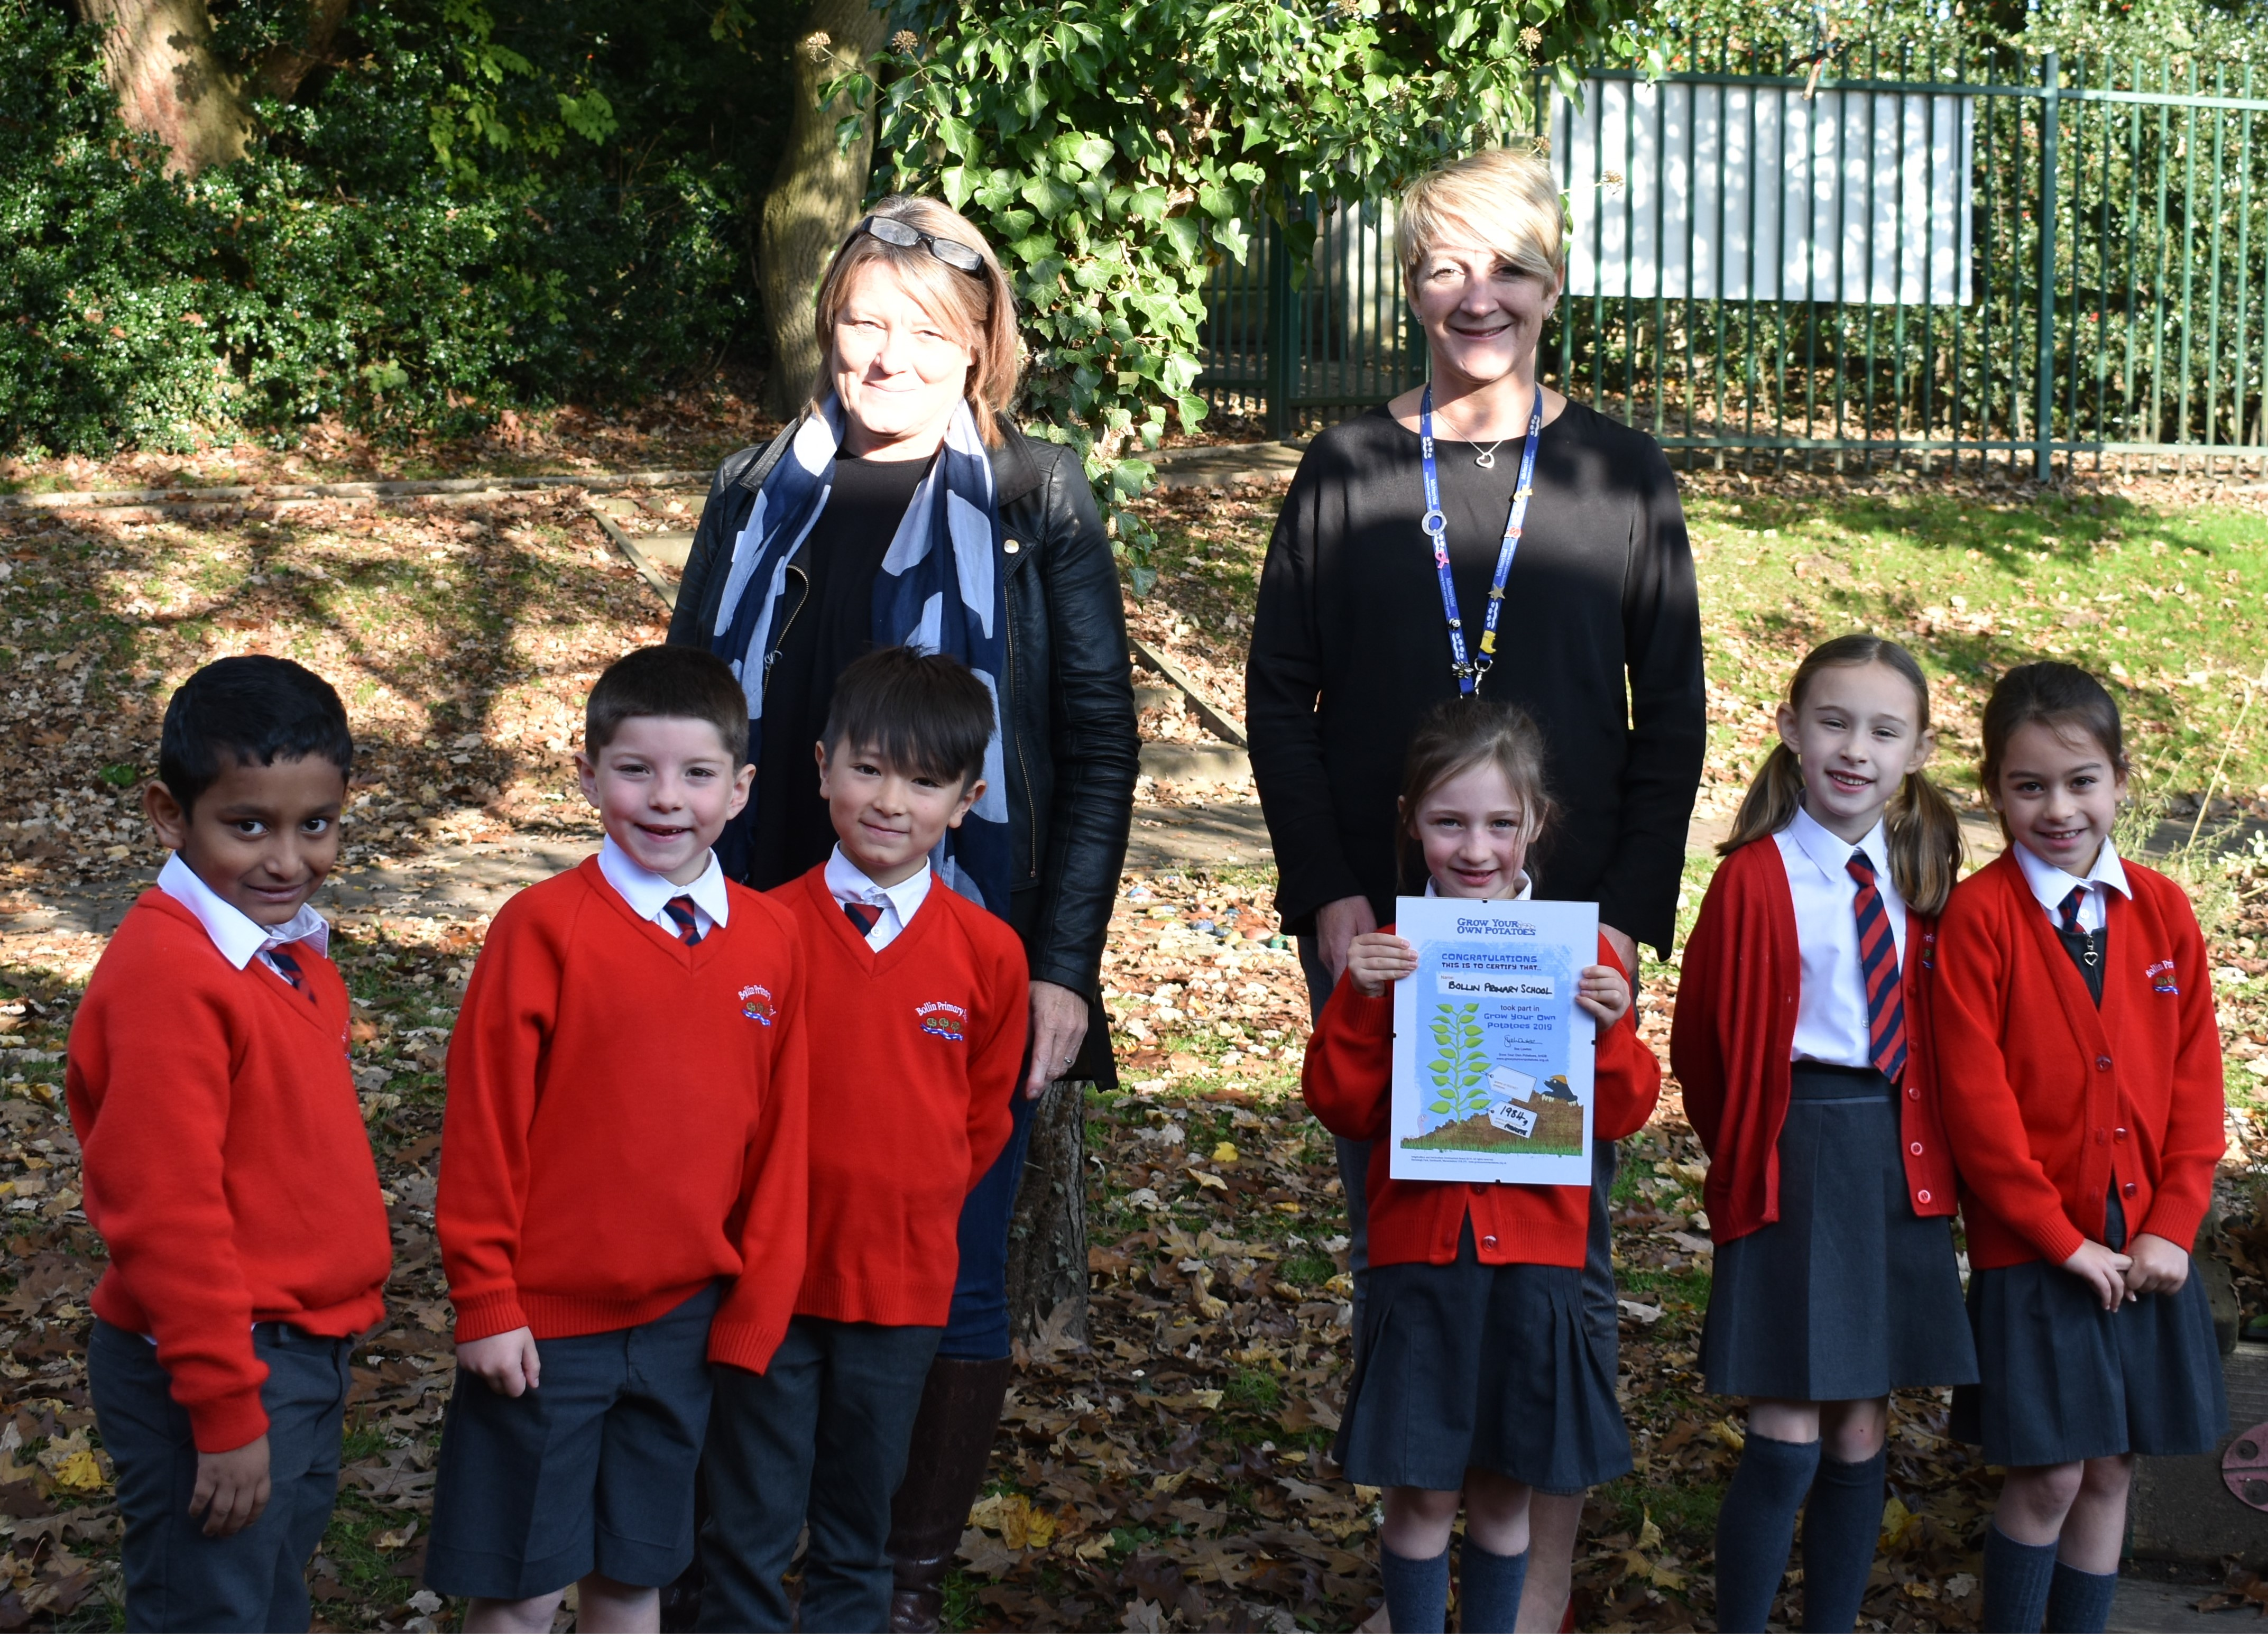 Pictured here on a lovely sunny day receiving their prize and winners certificate